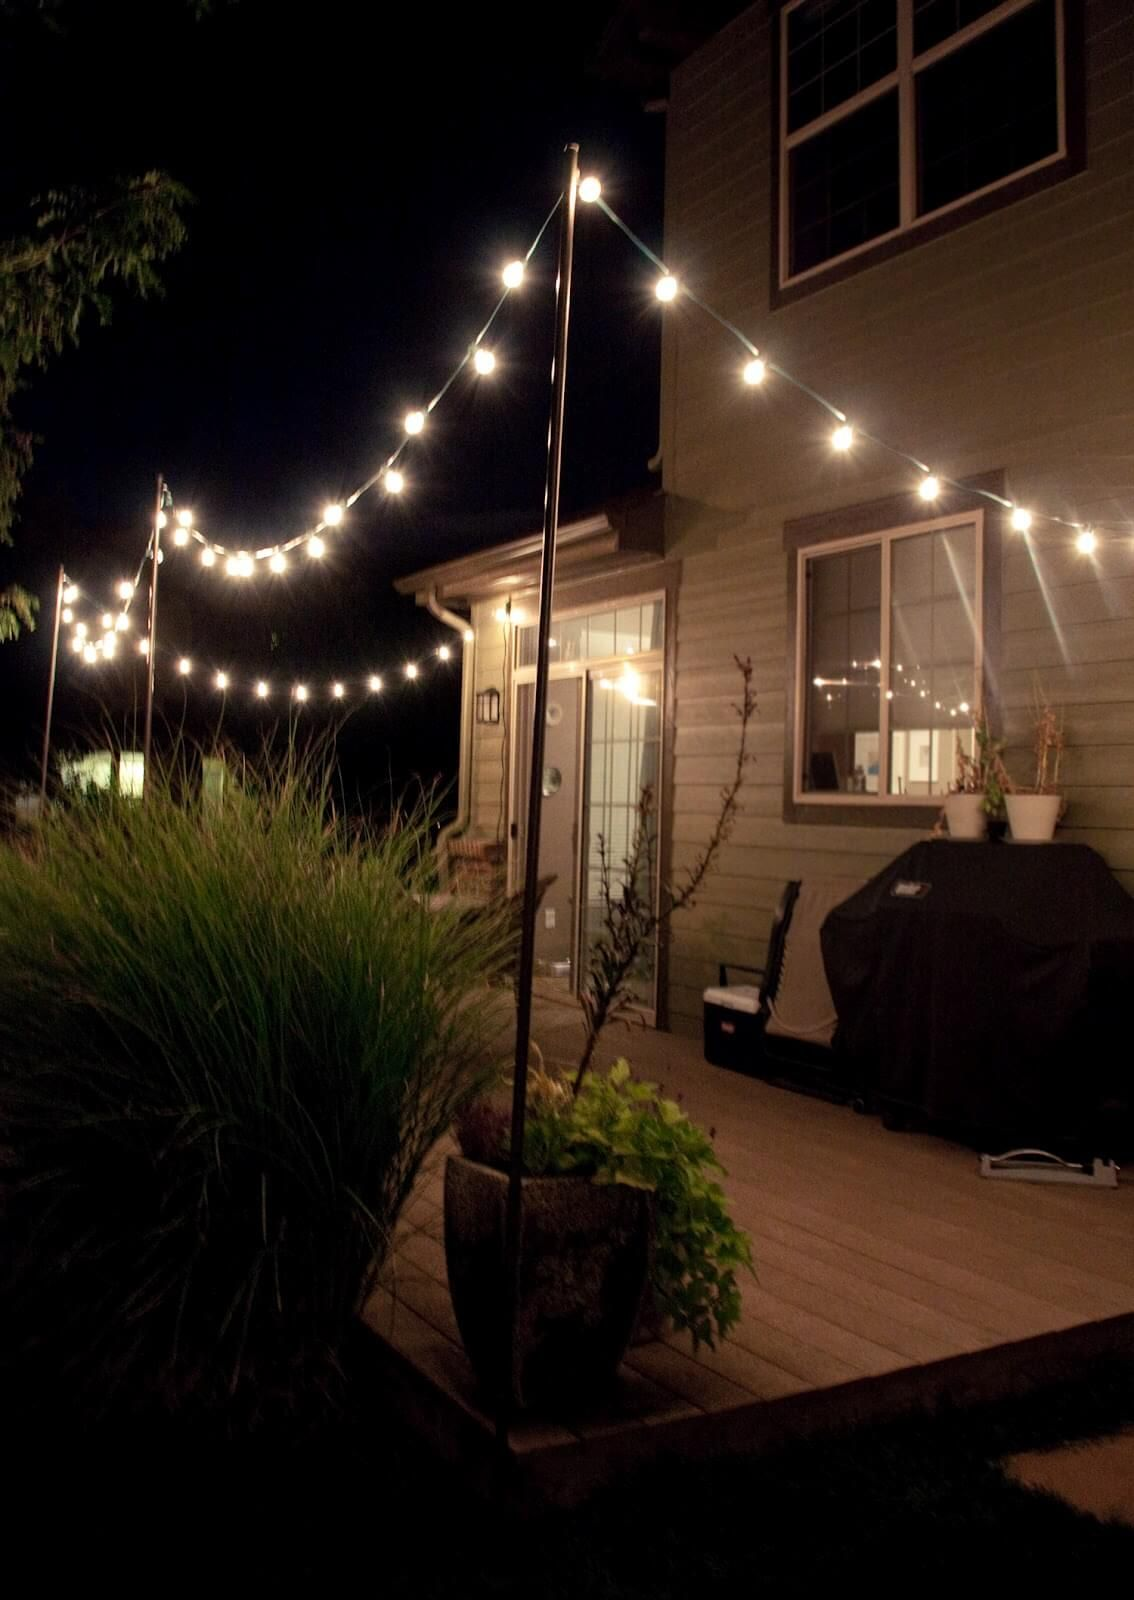 27 pretty backyard lighting ideas for your home backyard decking 27 pretty backyard lighting ideas for your home workwithnaturefo